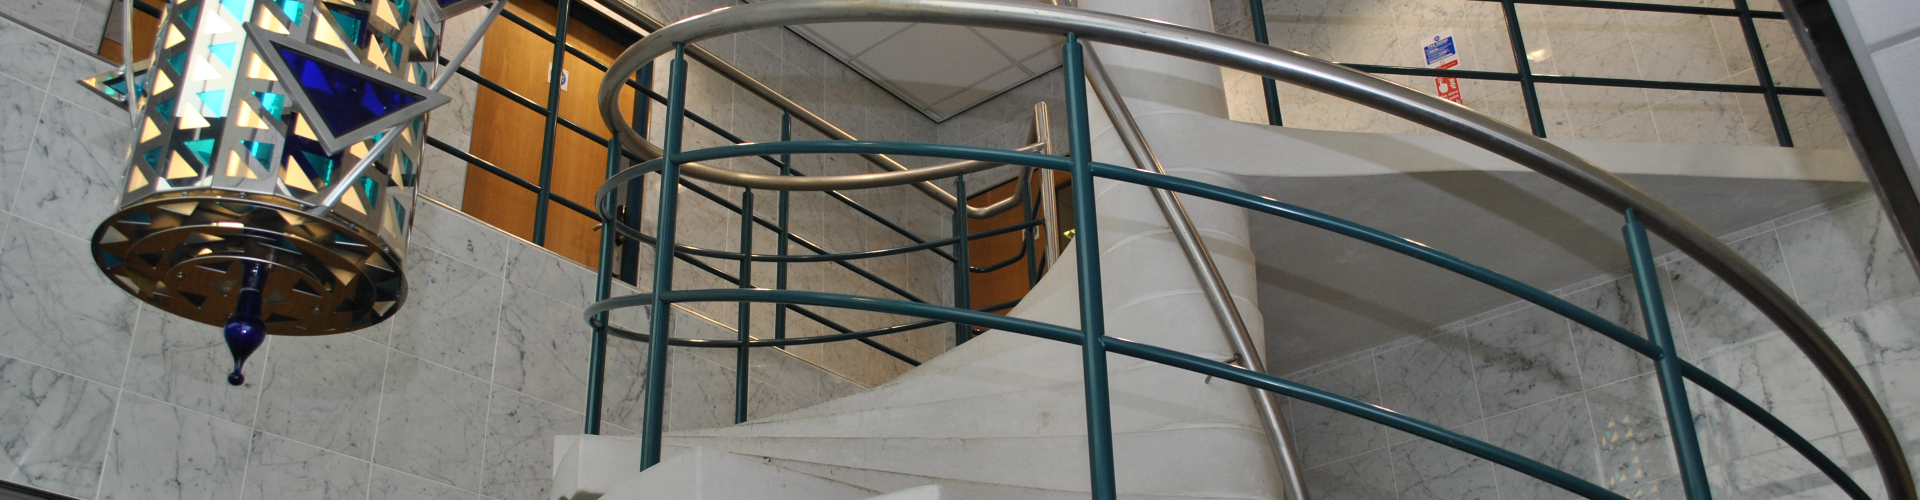 Image of stairway at Europa House.